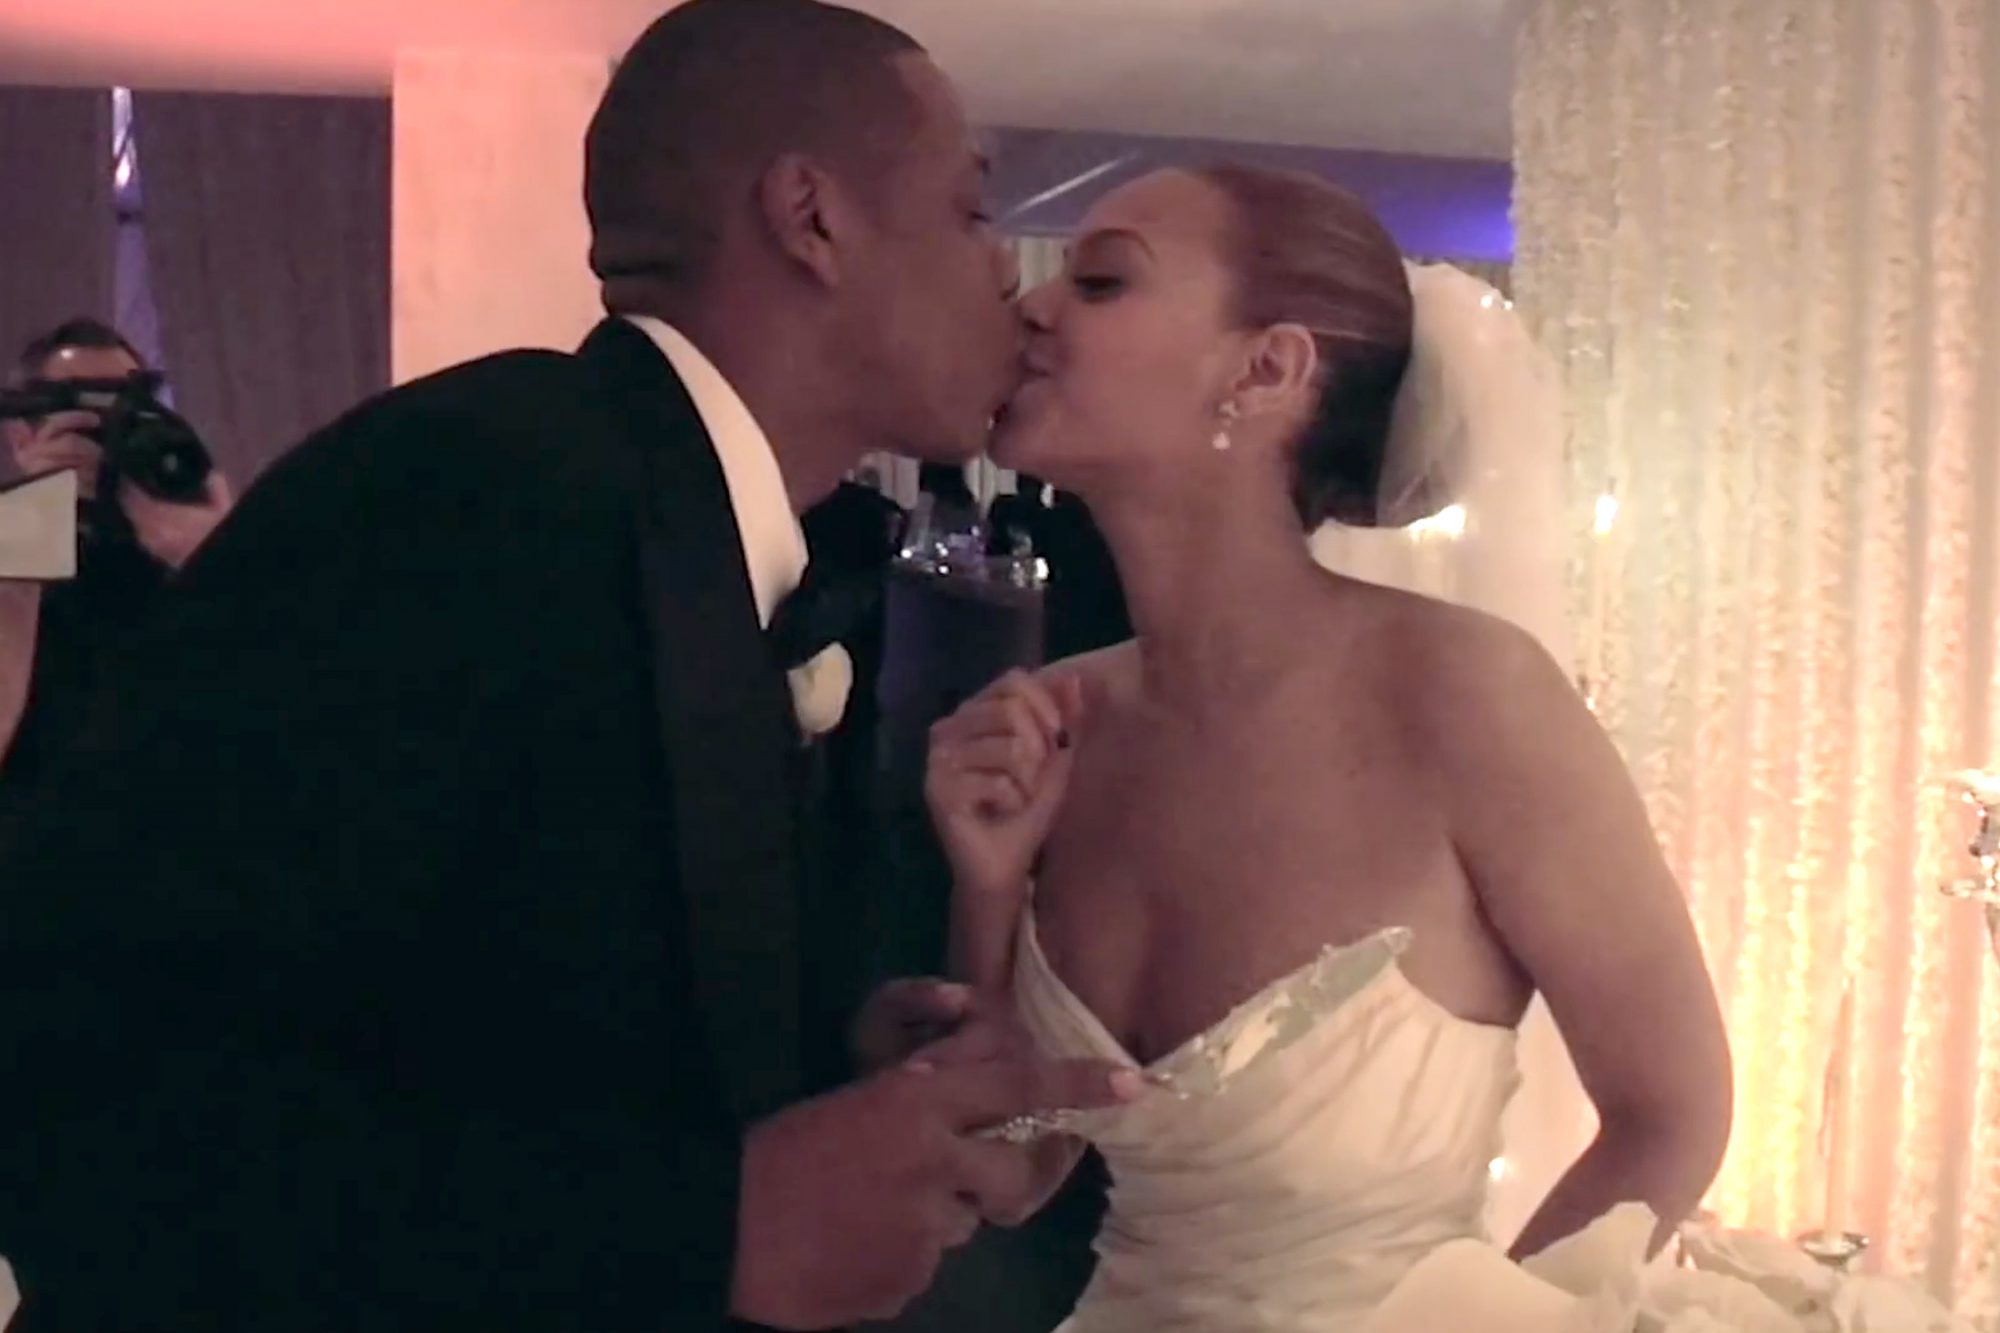 Jay-Z and Beyonce Wedding https://www.youtube.com/watch?v=gM89Q5Eng_M